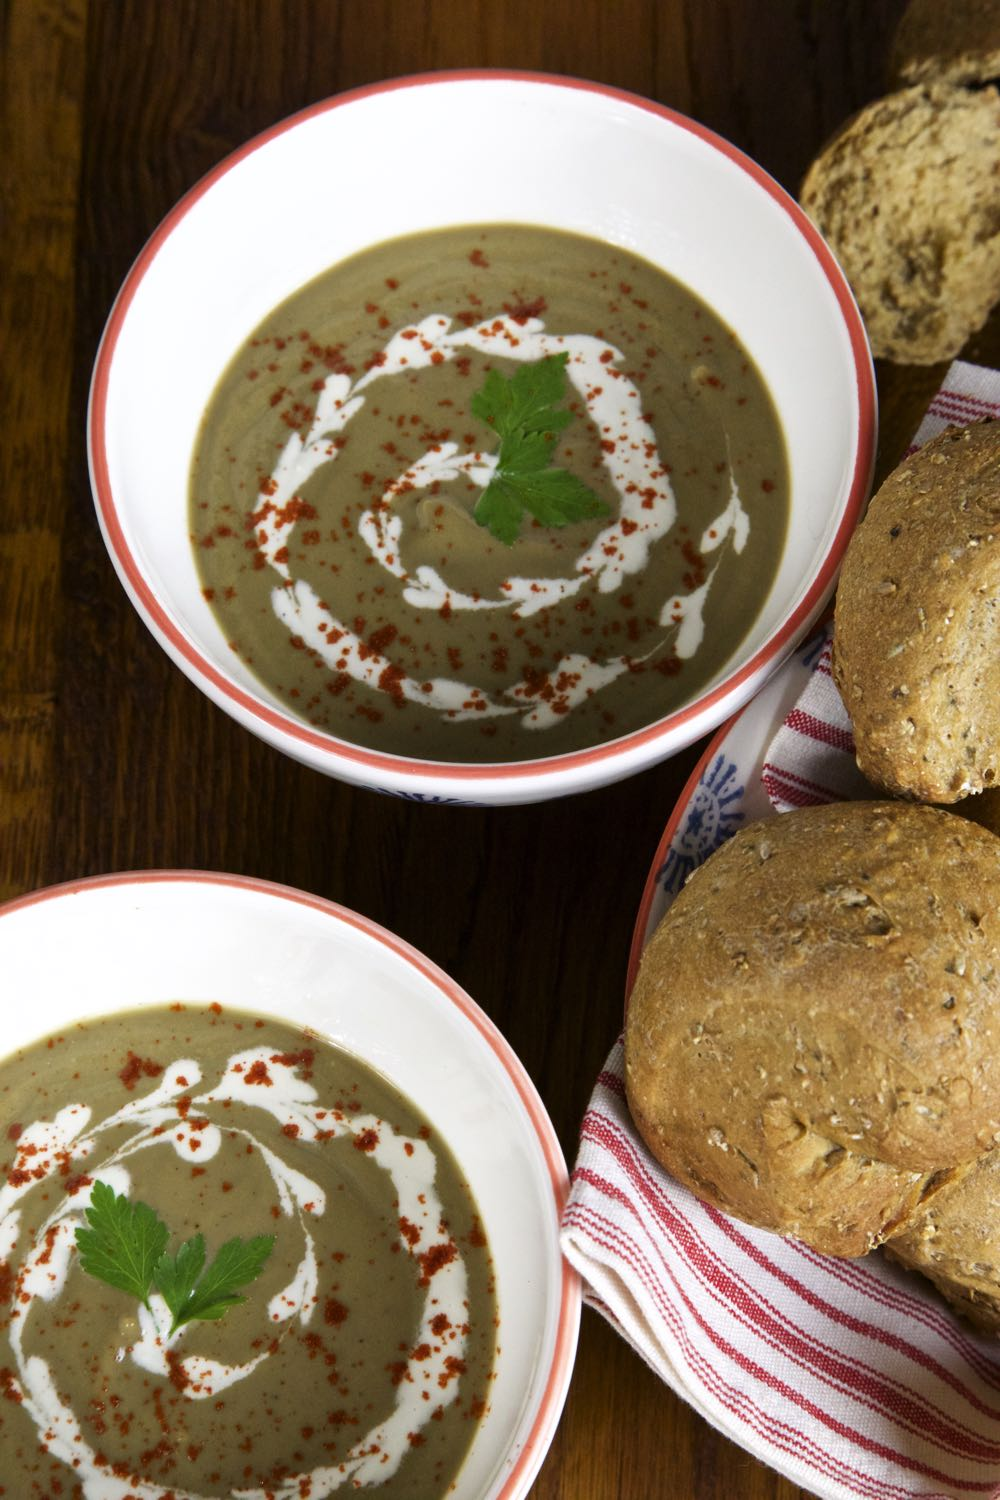 Vegan Cream of Mushroom Soup - So velvety and rich, you won't believe there is no dairy cream hiding in there!